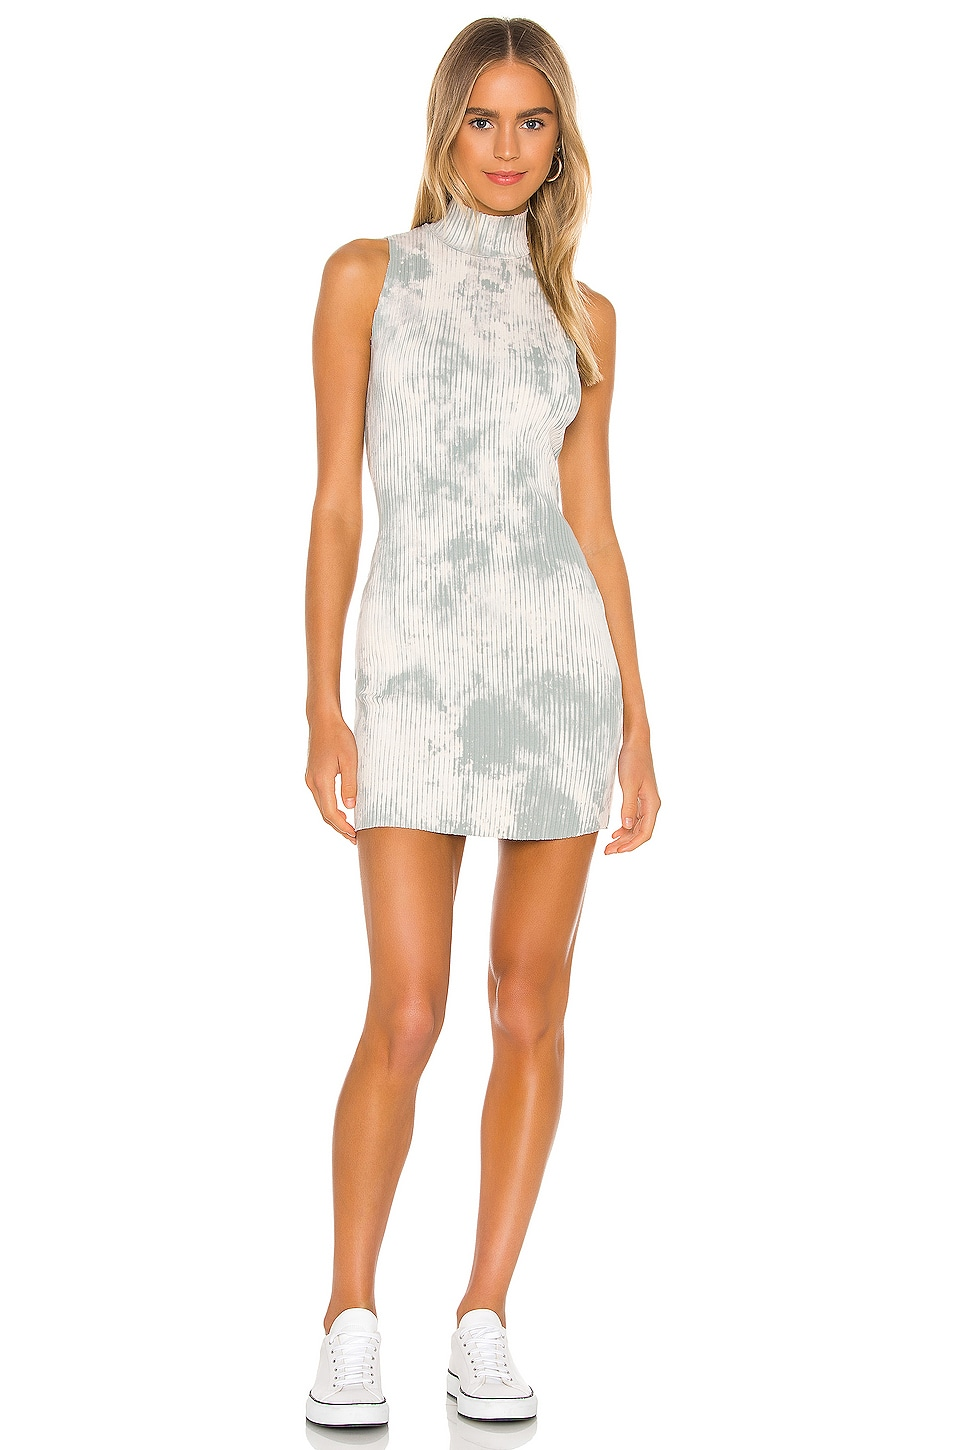 x REVOLVE Ibiza Racerback Dress XO             COTTON CITIZEN                                                                                                       CA$ 224.67 14